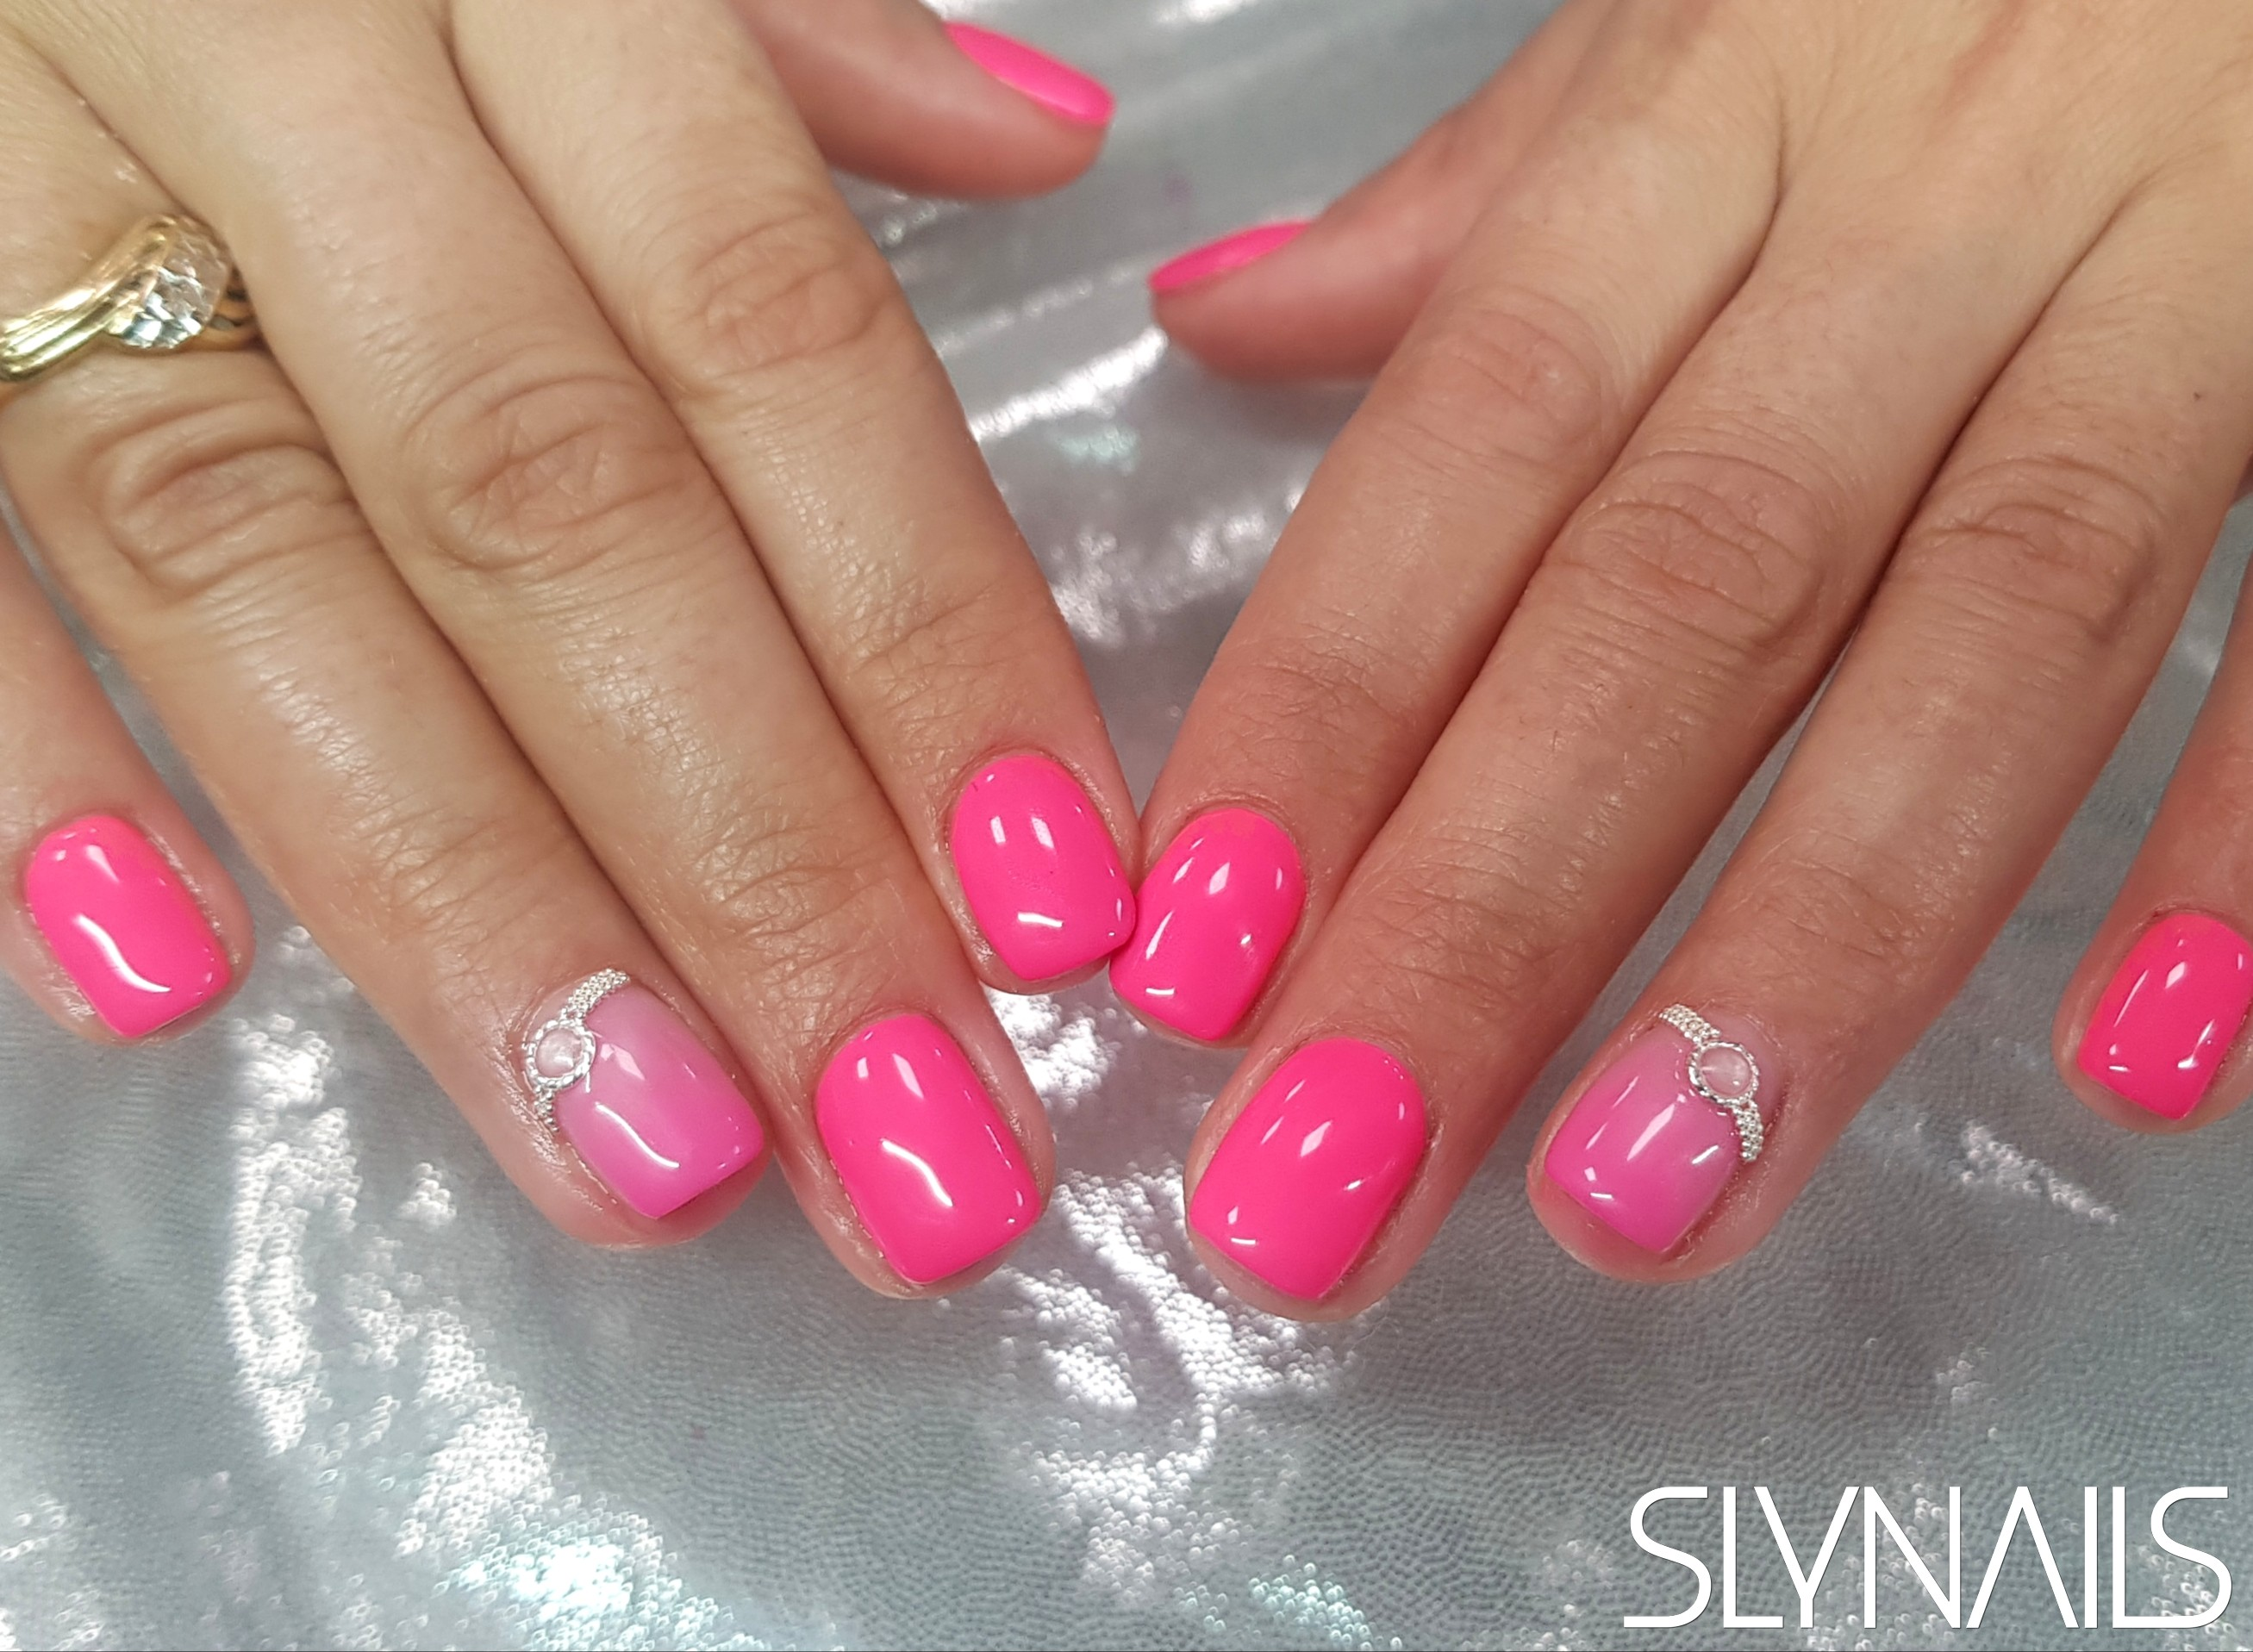 Gel-lac (gel polish), Pink, Neon, Square, Metal Decoration, One color